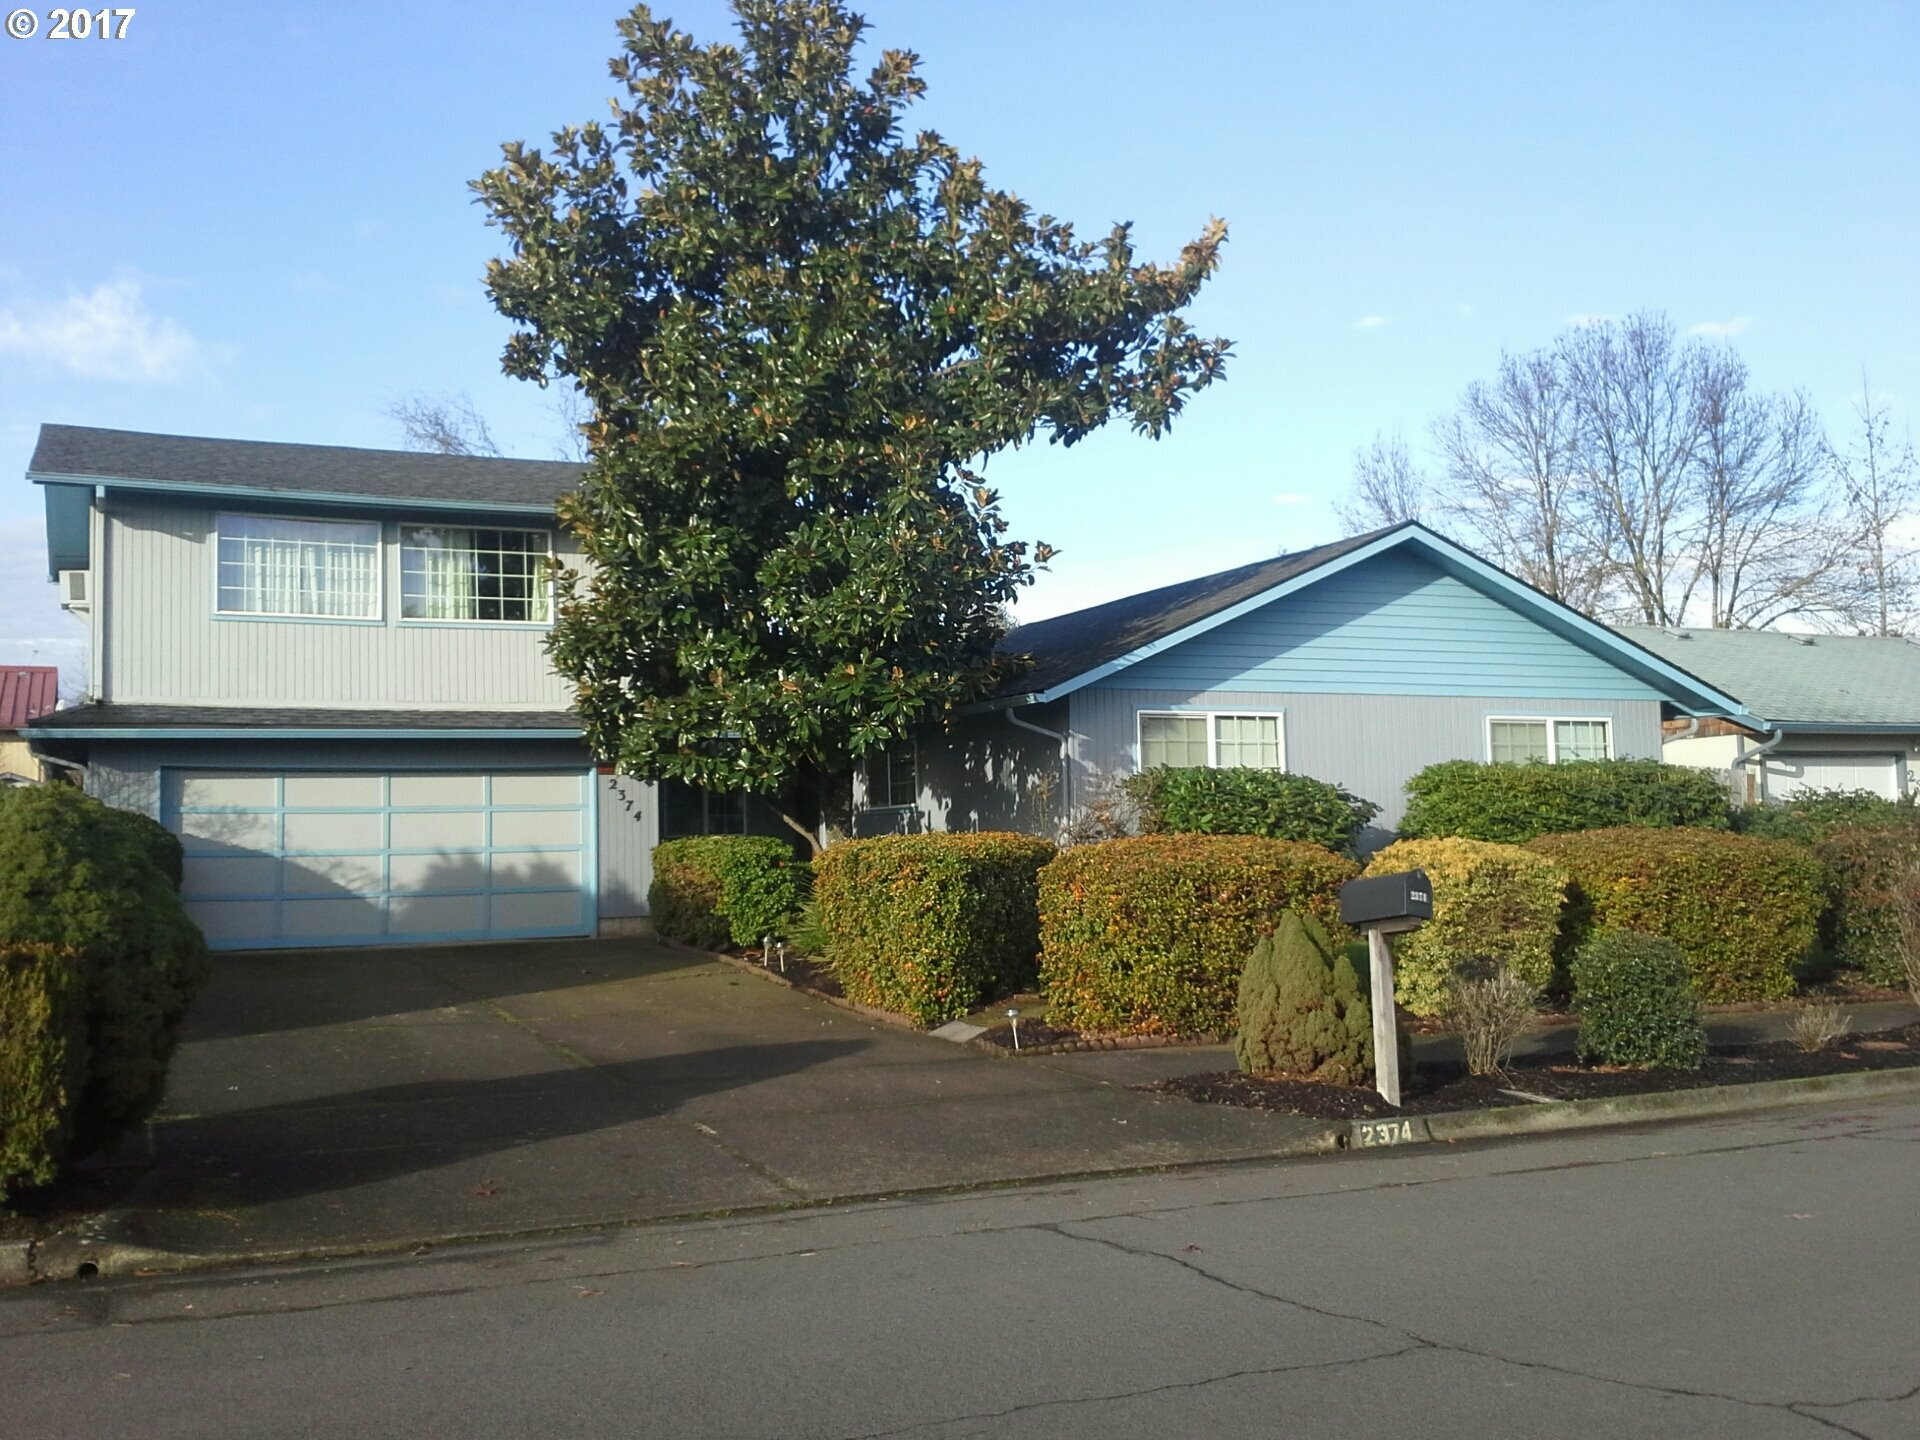 2374 8th St, Springfield, OR - USA (photo 1)